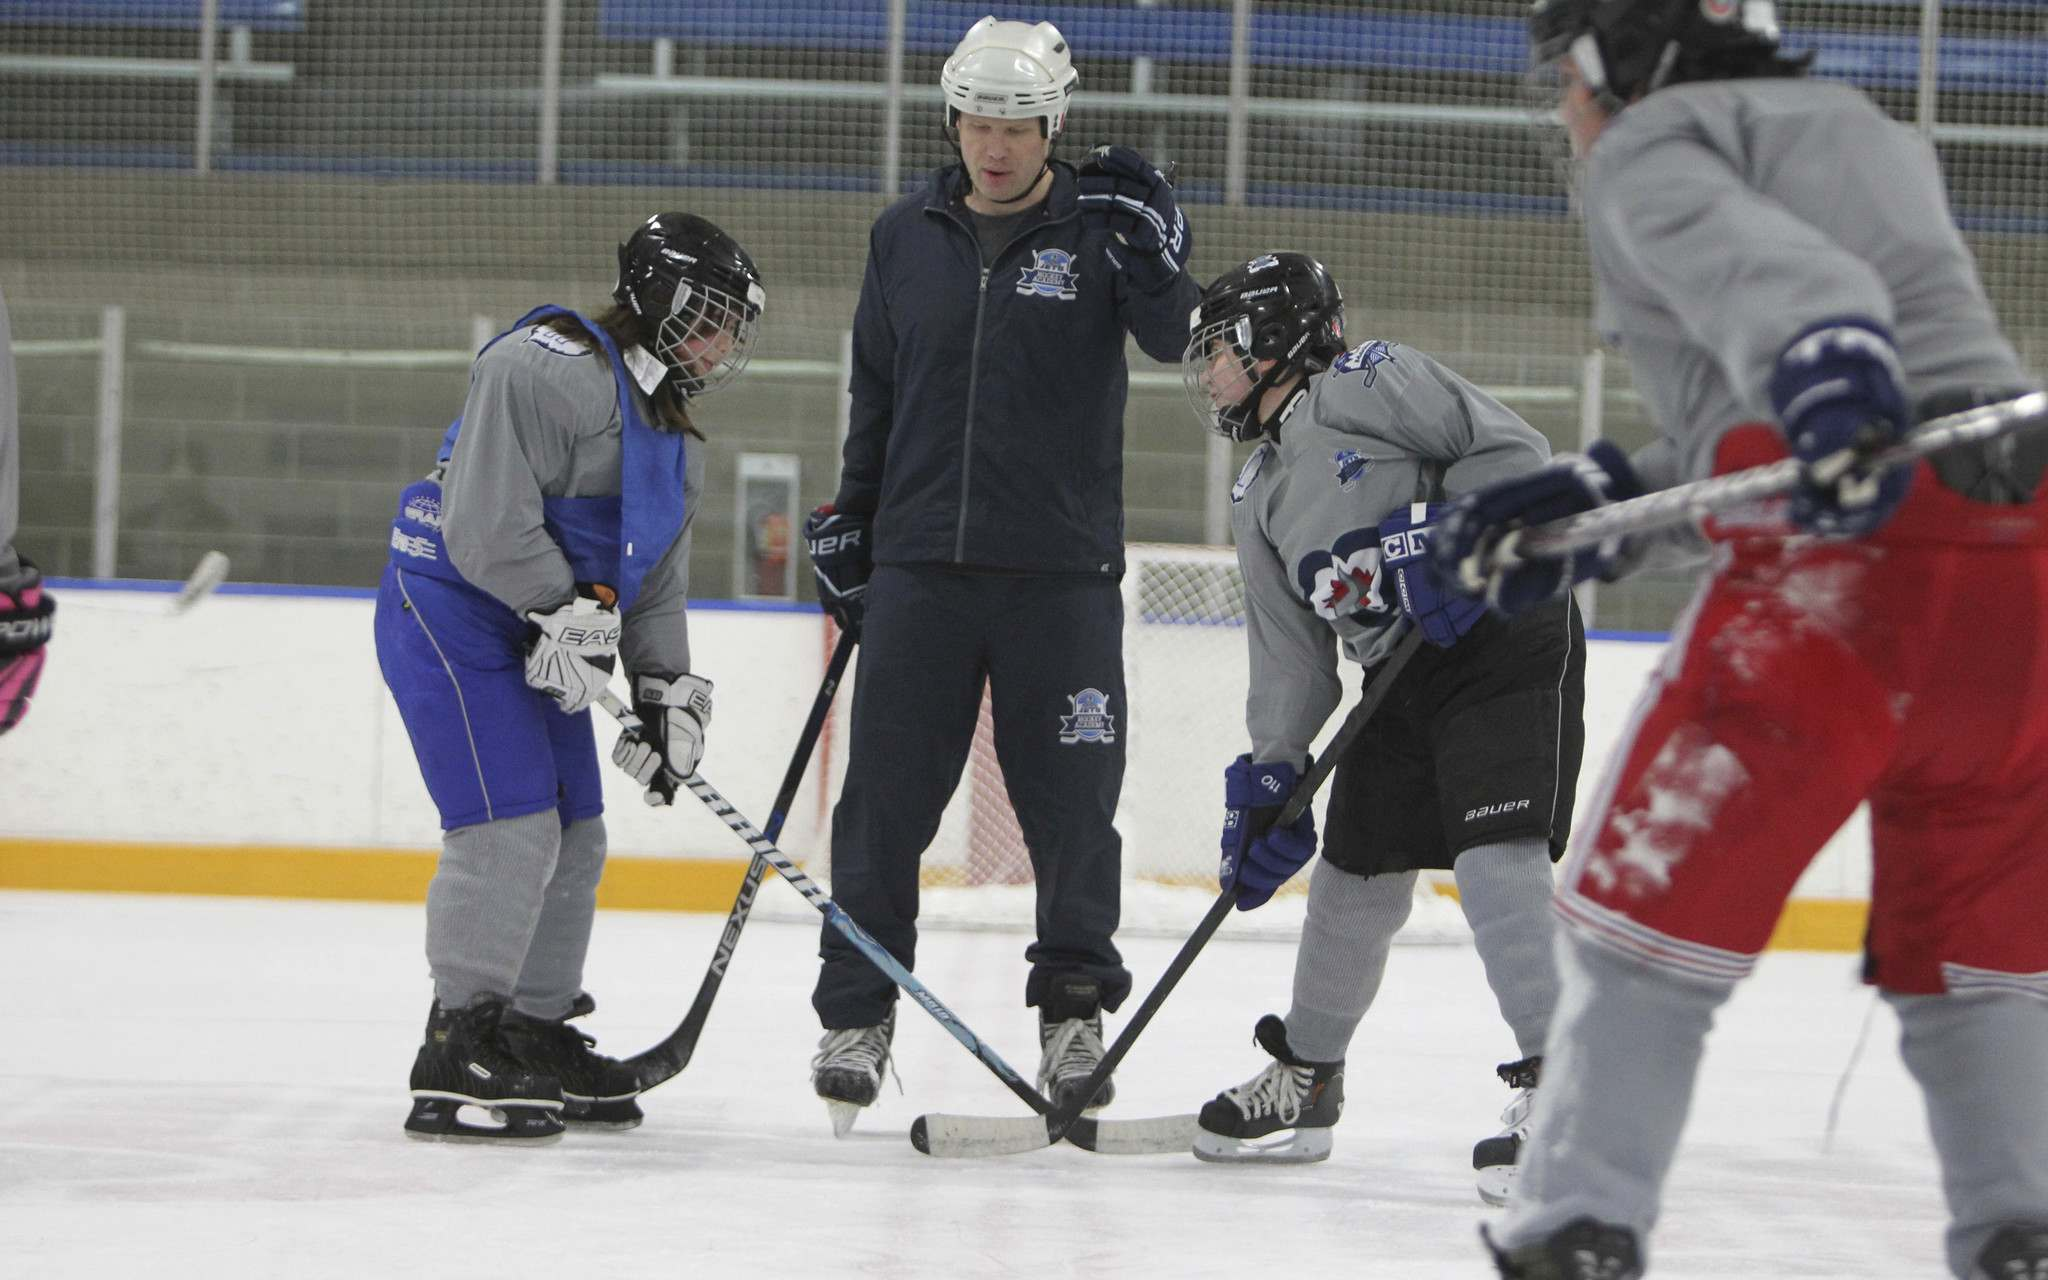 Cale David, an instructor from Price Industries, drops the puck during a scrimmage for Grade 6 and 7 students from Chief Peguis Junior High. (Ruth Bonneville / Winnipeg Free Press)